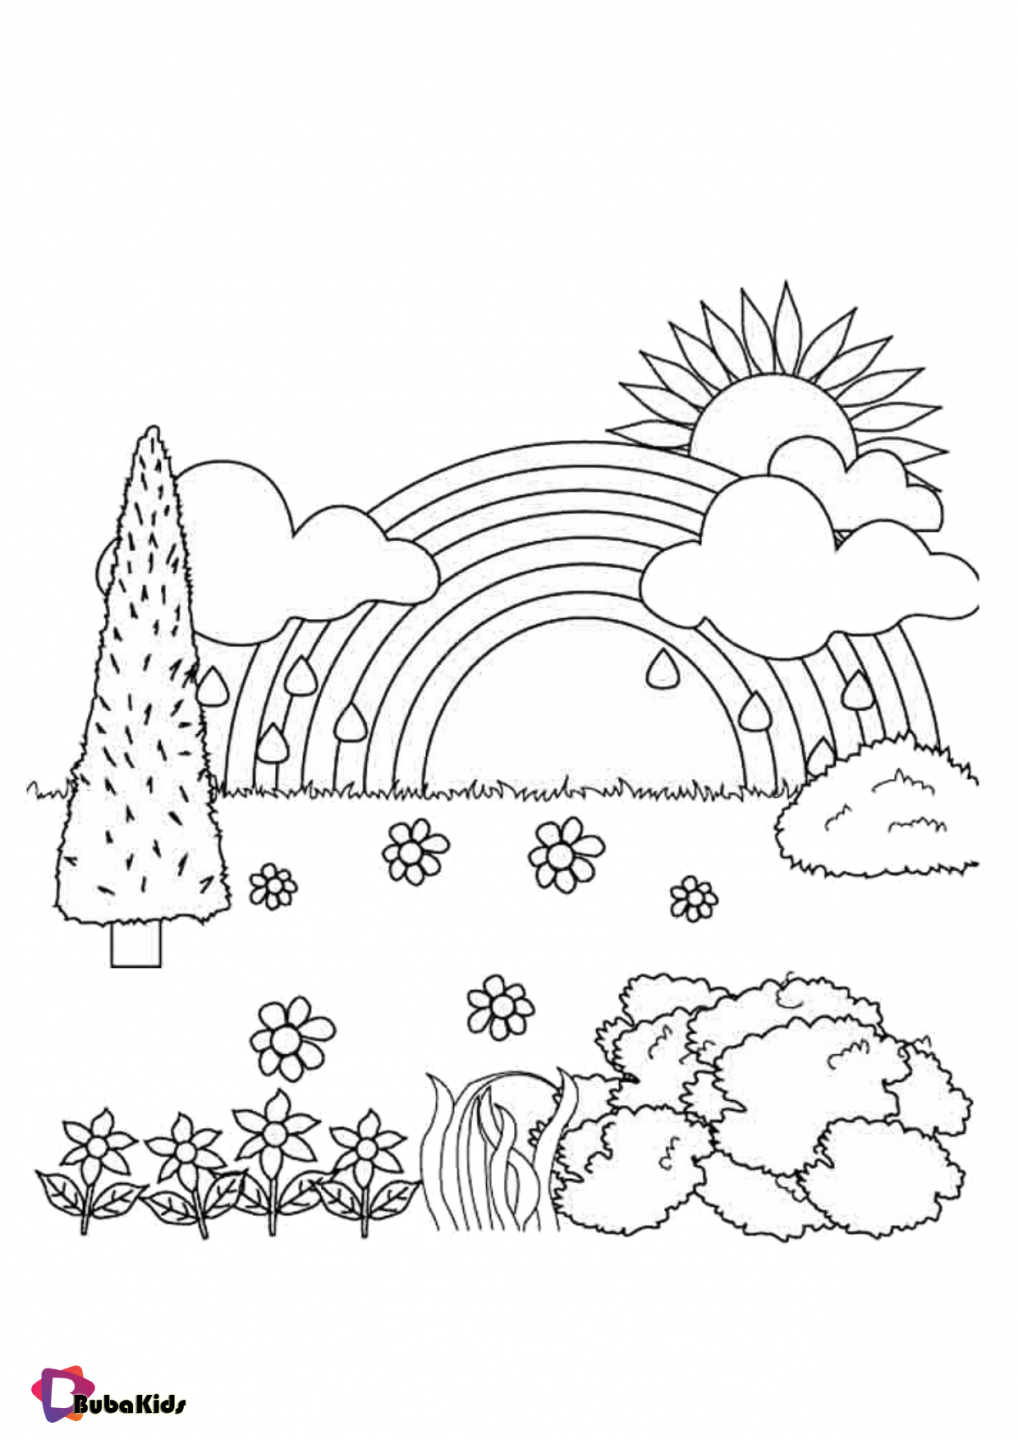 Rainbow Sun Cloud Tree And Flowers Coloring Pages Bubakids Com Coloring Pages Cartoon Coloring Pages Easy Coloring Pages